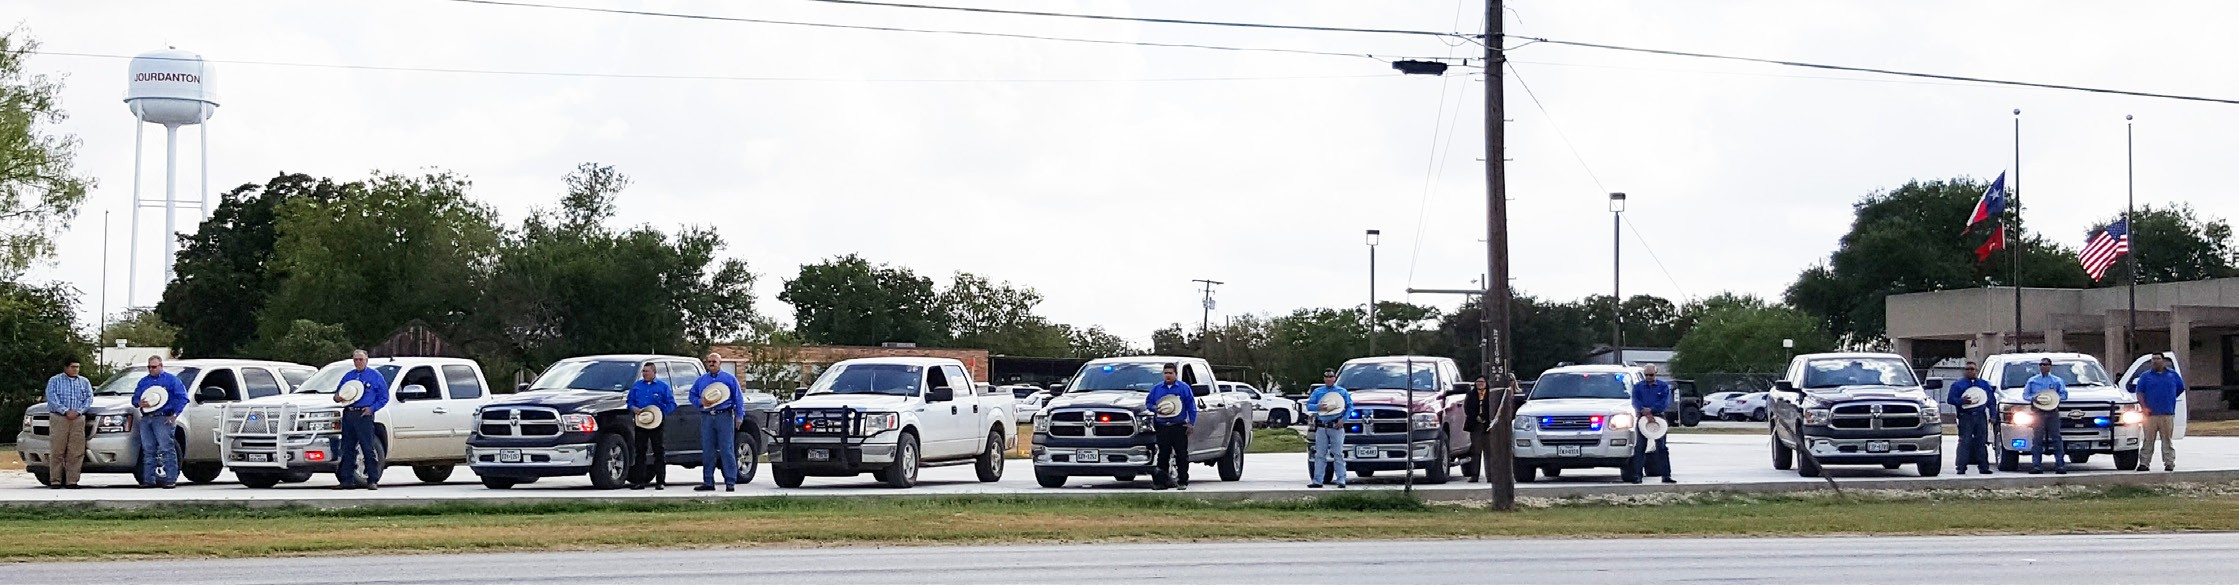 The Atascosa County Sheriff's Office gathered with the Sheriff, CID Deputies, and support staff standing, dressed in blue, for a minute of silence with lights on in memory of Darren Goforth on Friday, September 4, 2015 at 11 a.m.#backtheblue.